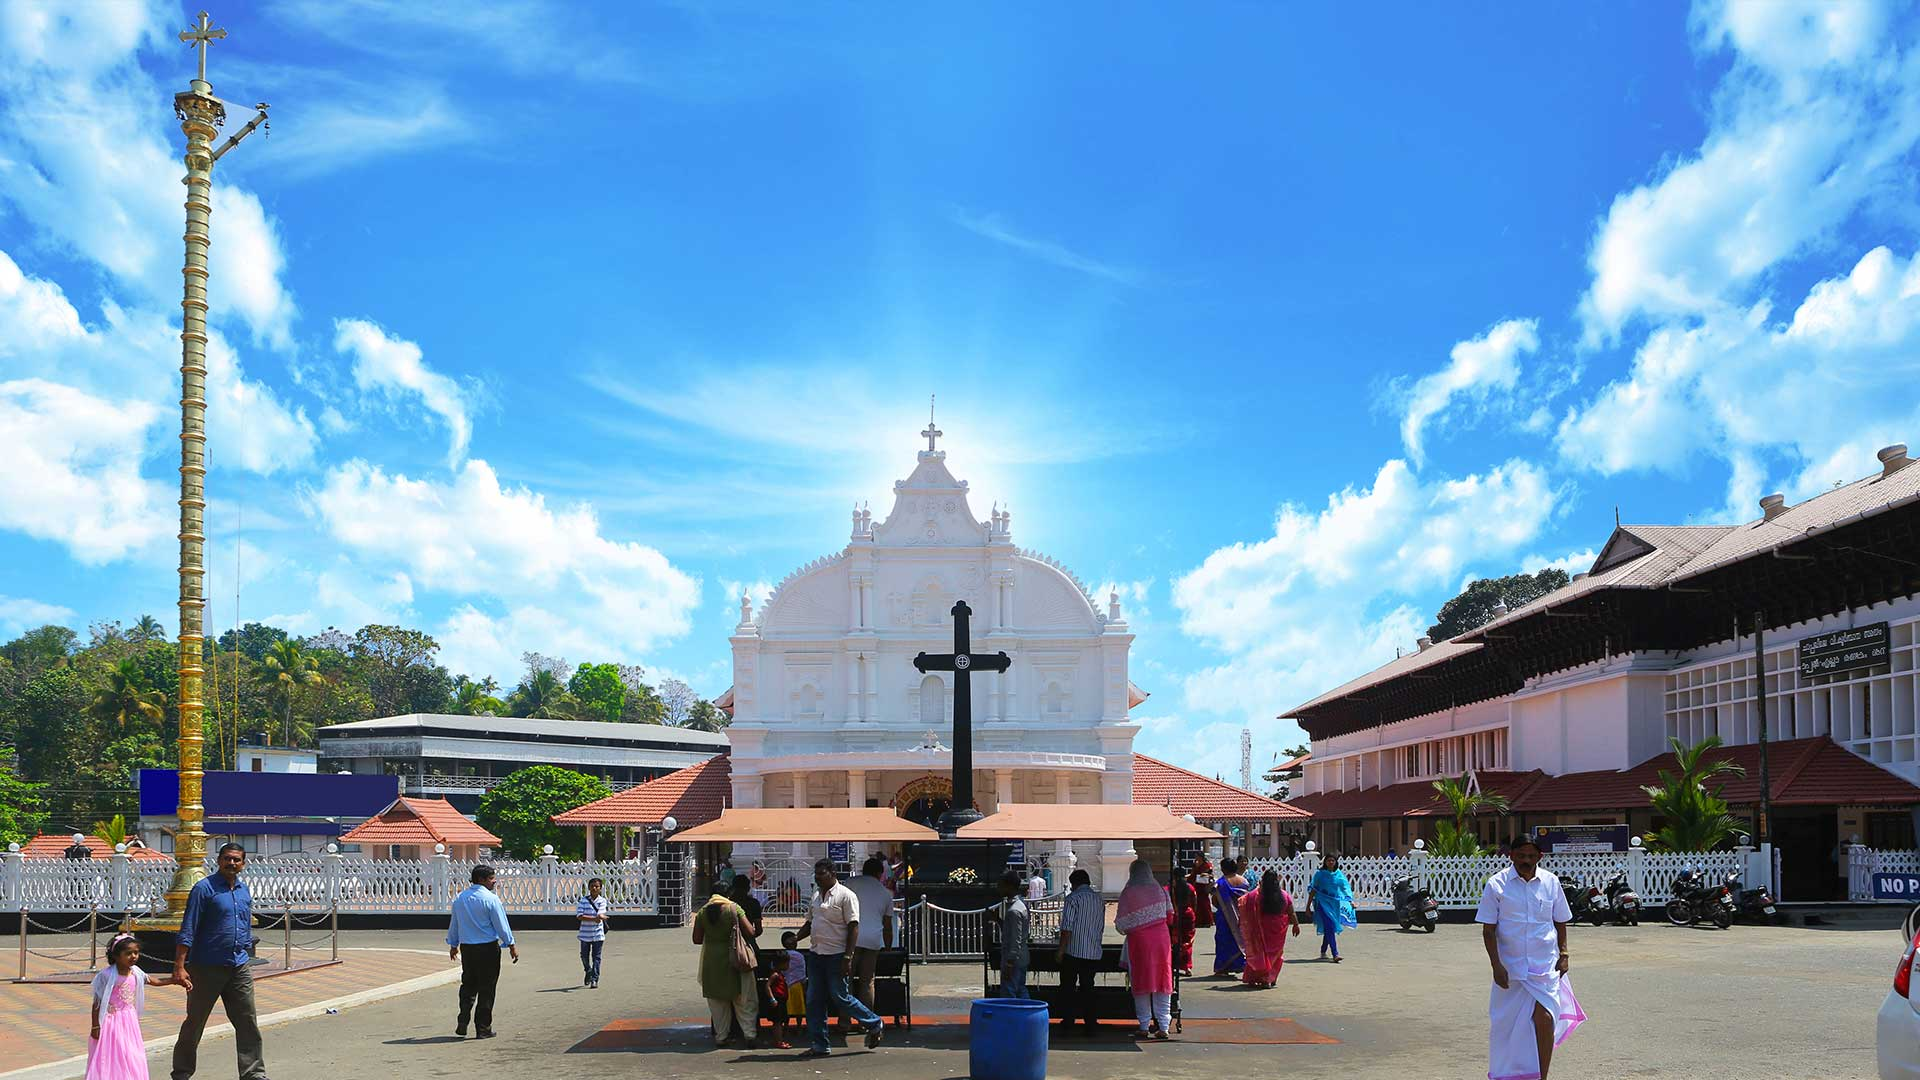 The-St.-Thomas-Church-Mar-Thoma-Cheriapally-Kothamangalam, Mar Thoma Cheriapally